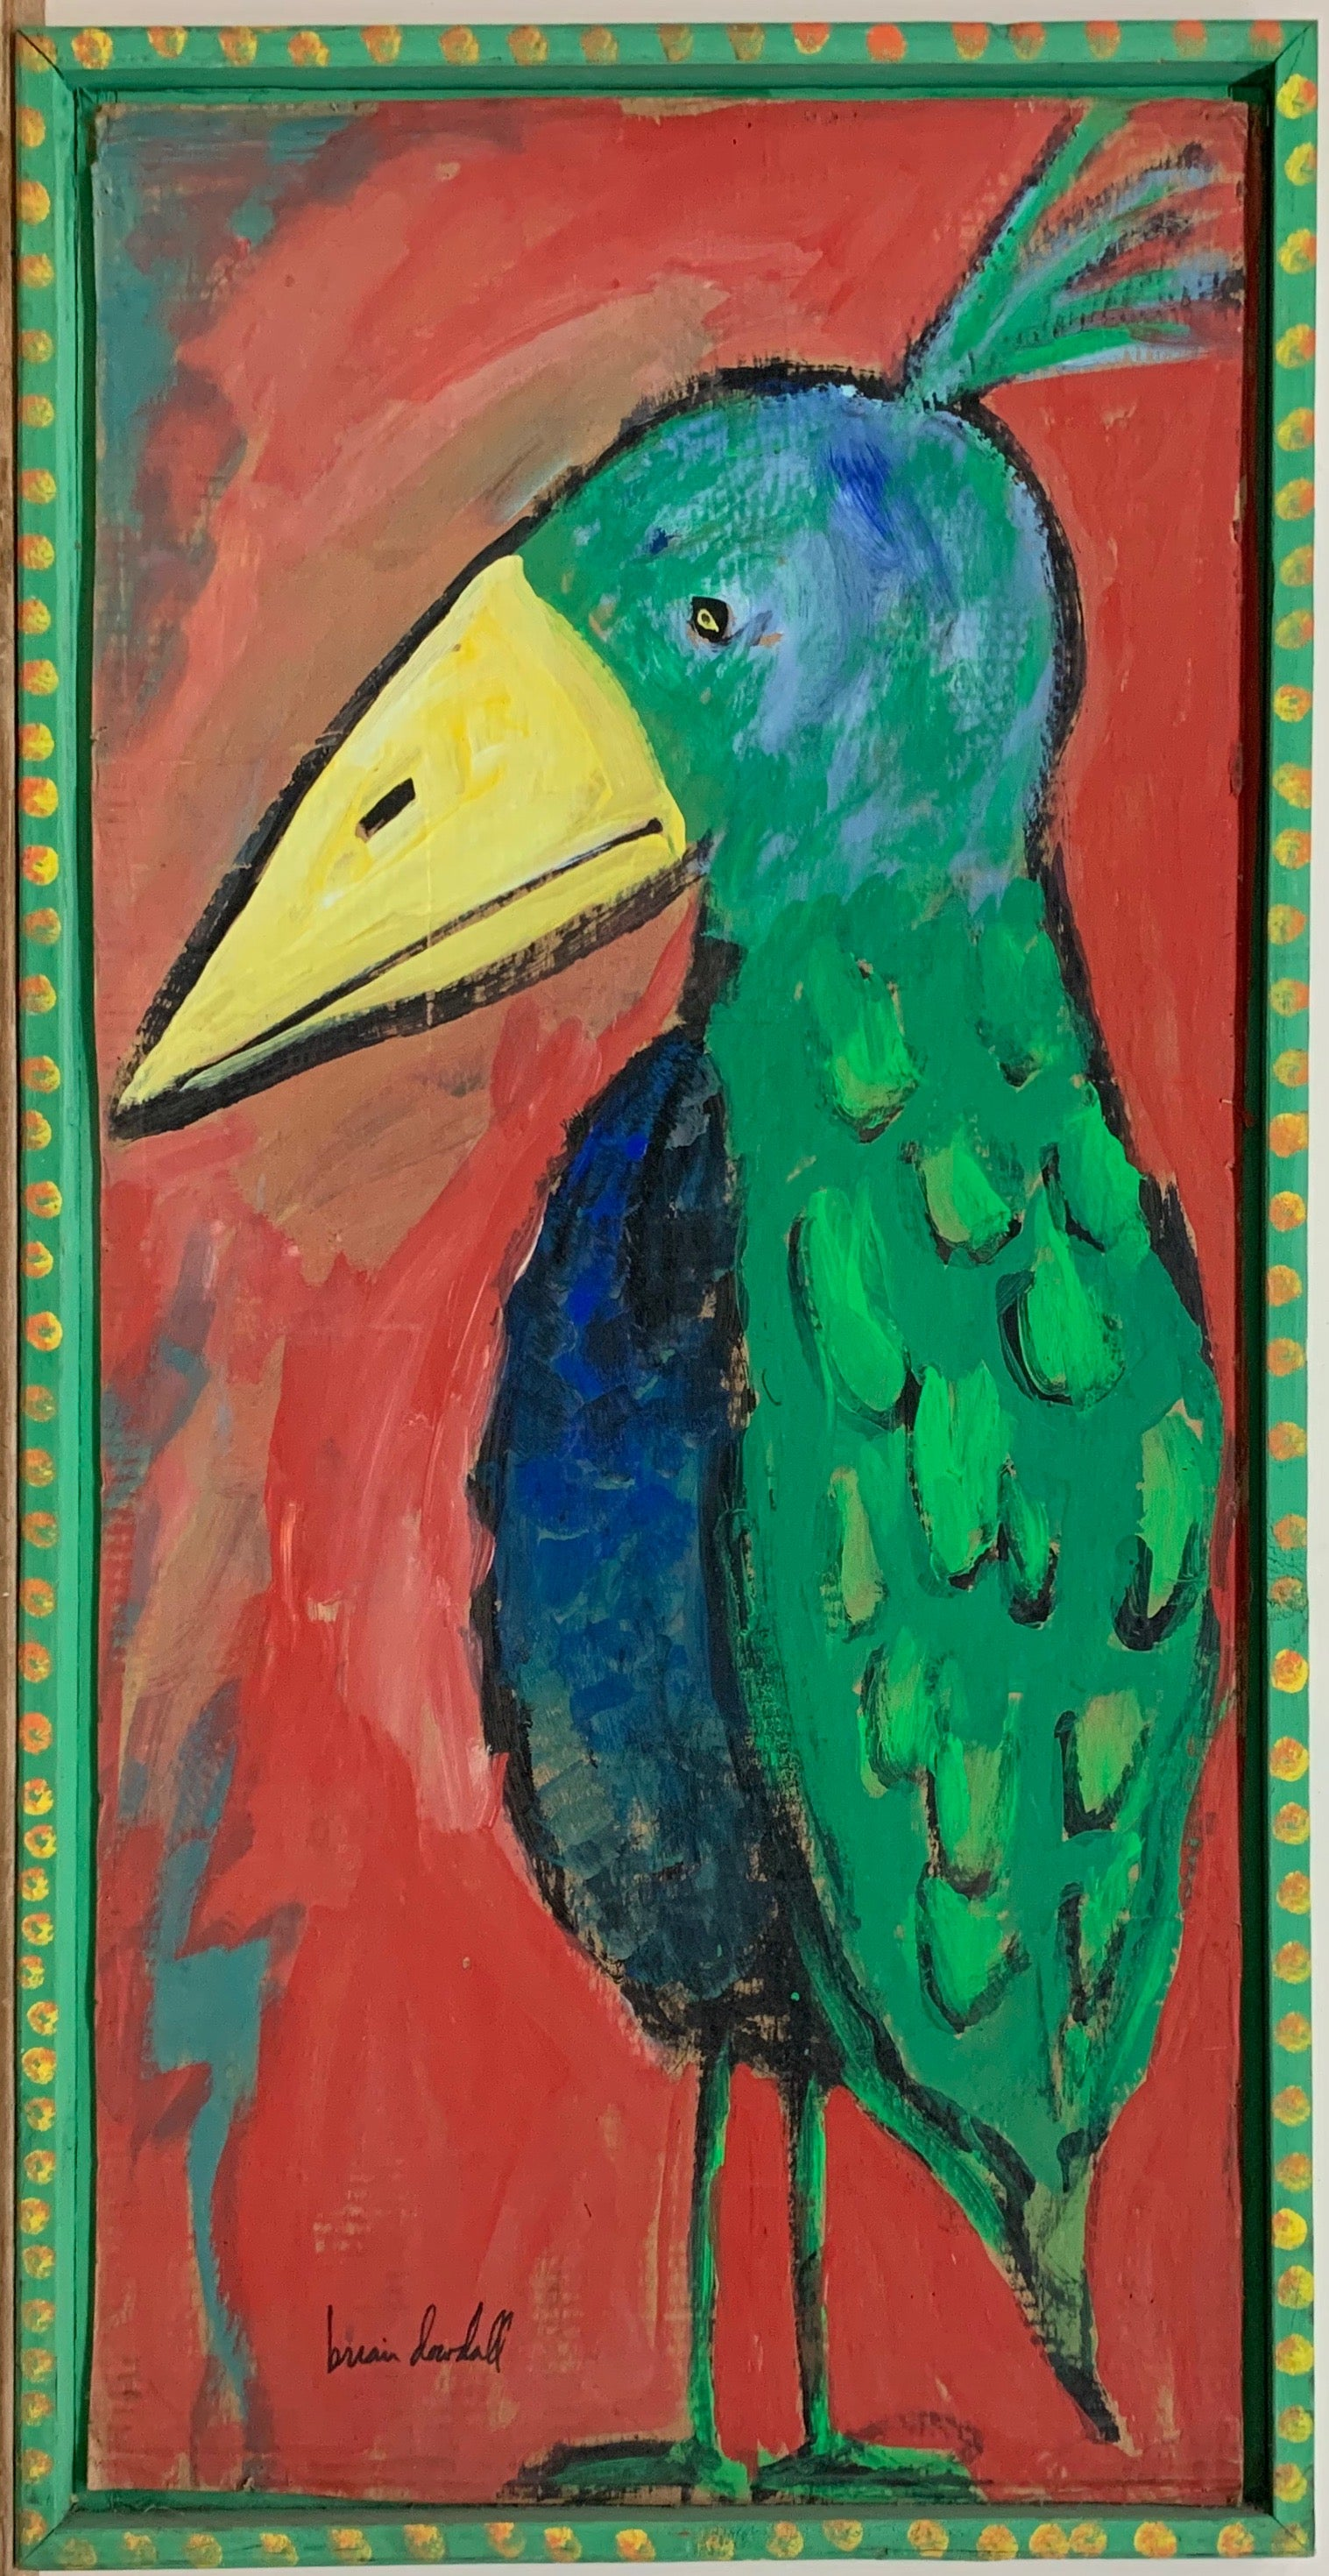 A Brian Dowdall painting of a colorful bird with green and blue feathers and a yellow beak.